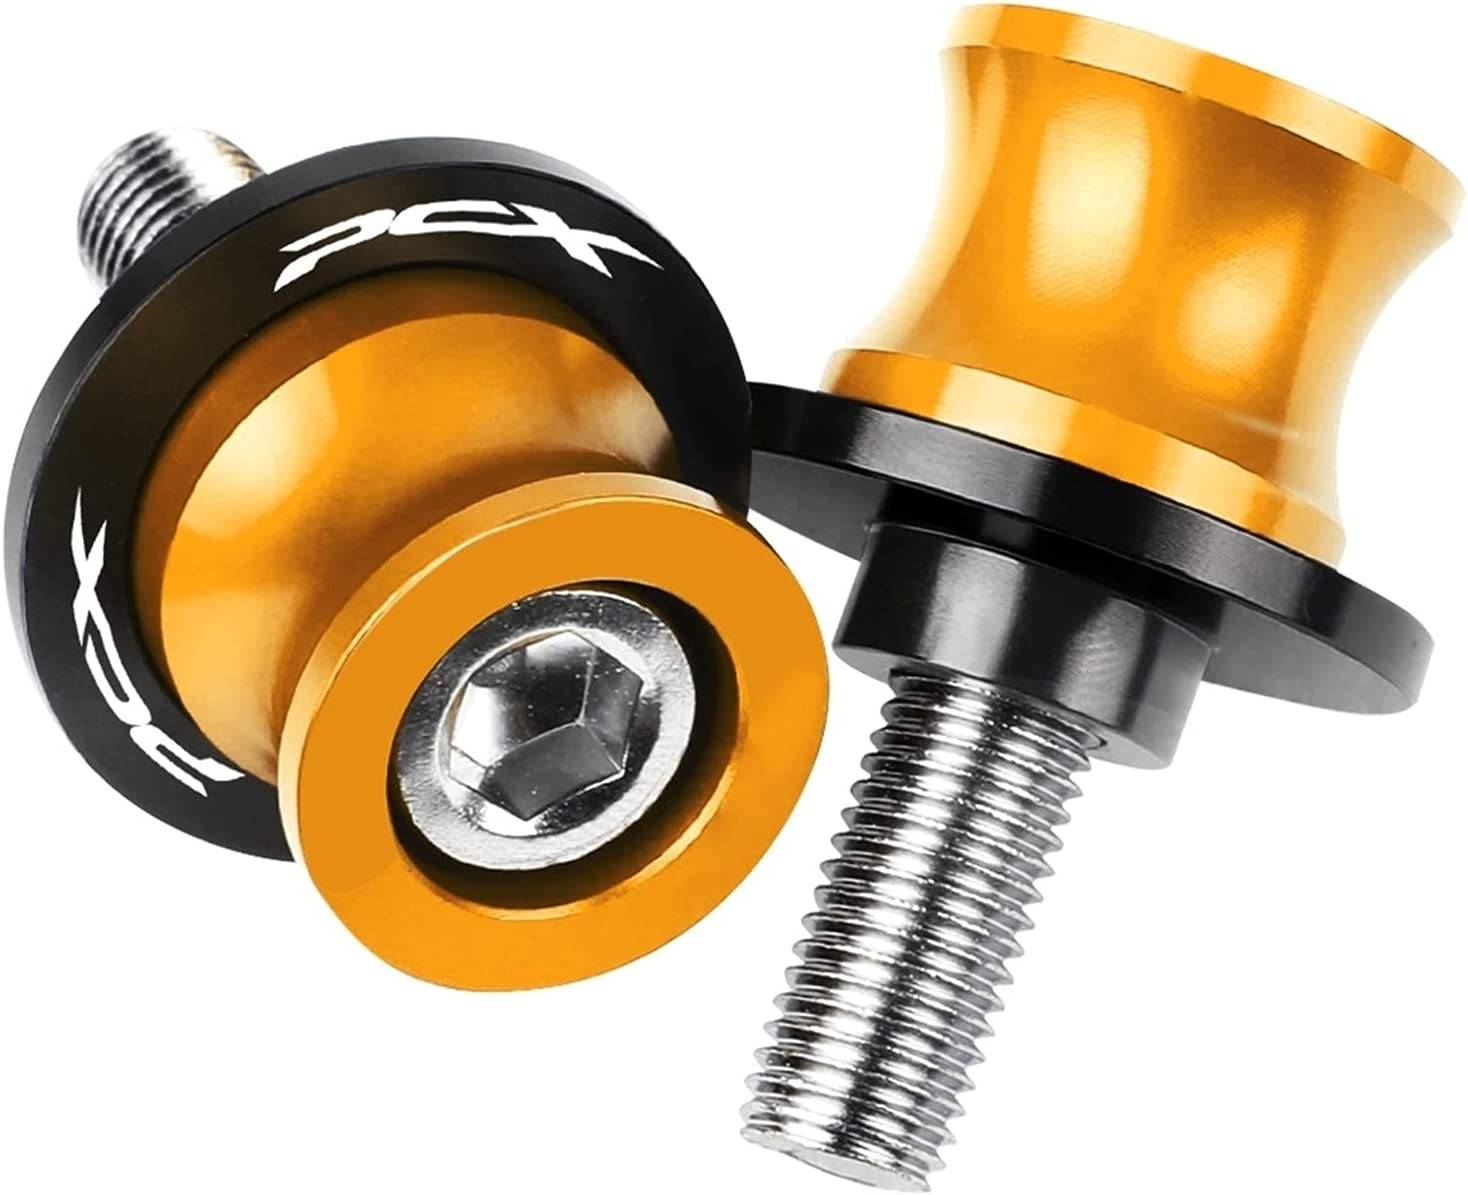 YHTG Motorcycle Super Special SALE held Rear Fork Spool Max 47% OFF CNC Alumi Screw Seat Slider